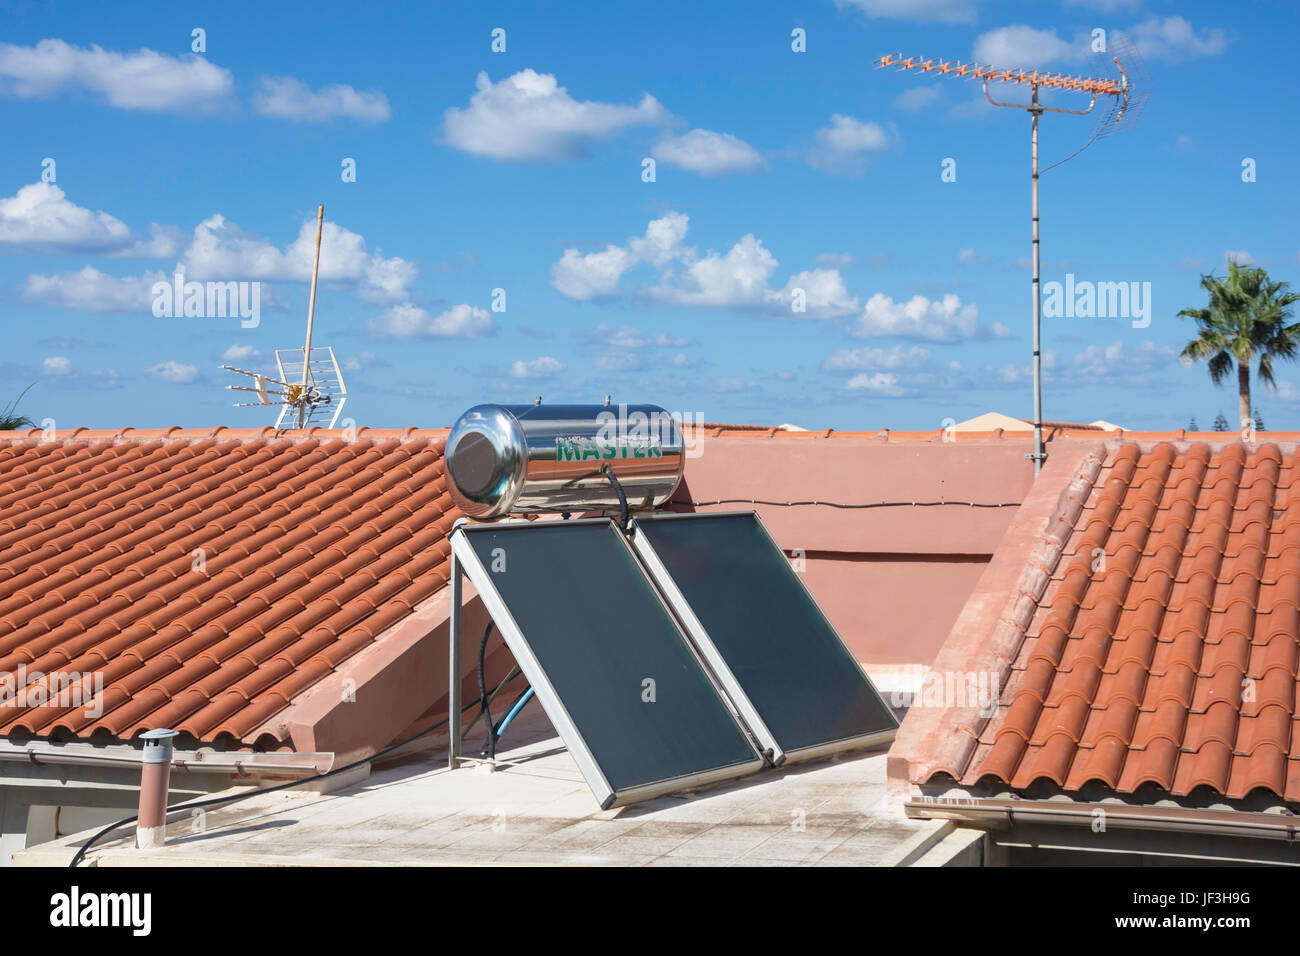 Solar panels and hot water cylinder on roof of apartment building, Rethymno (Rethymnon), Rethymno Region, Kriti (Crete) Region, Greece